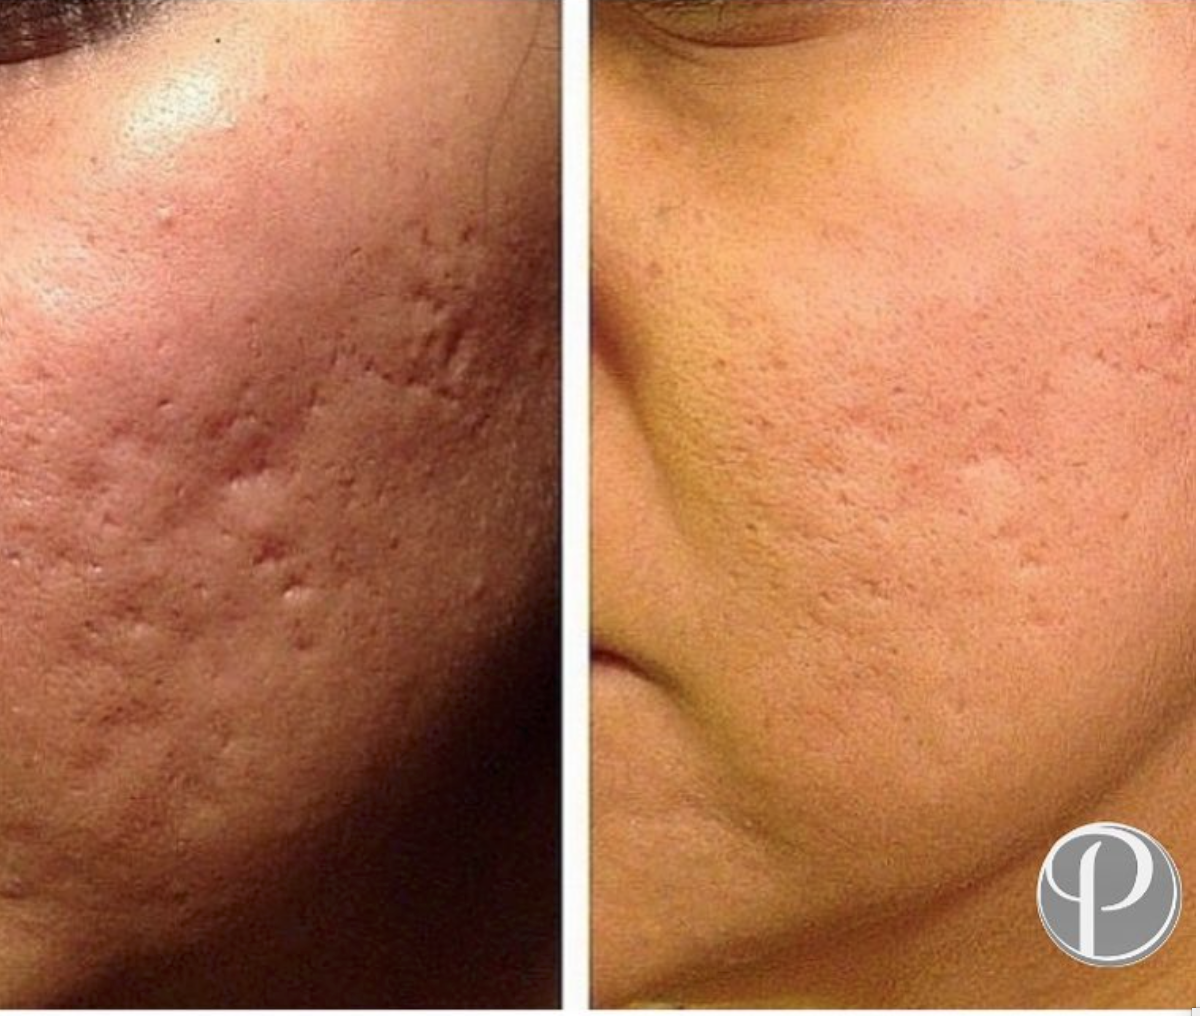 DermaPen (Microneedling) before and after by Premier Laser